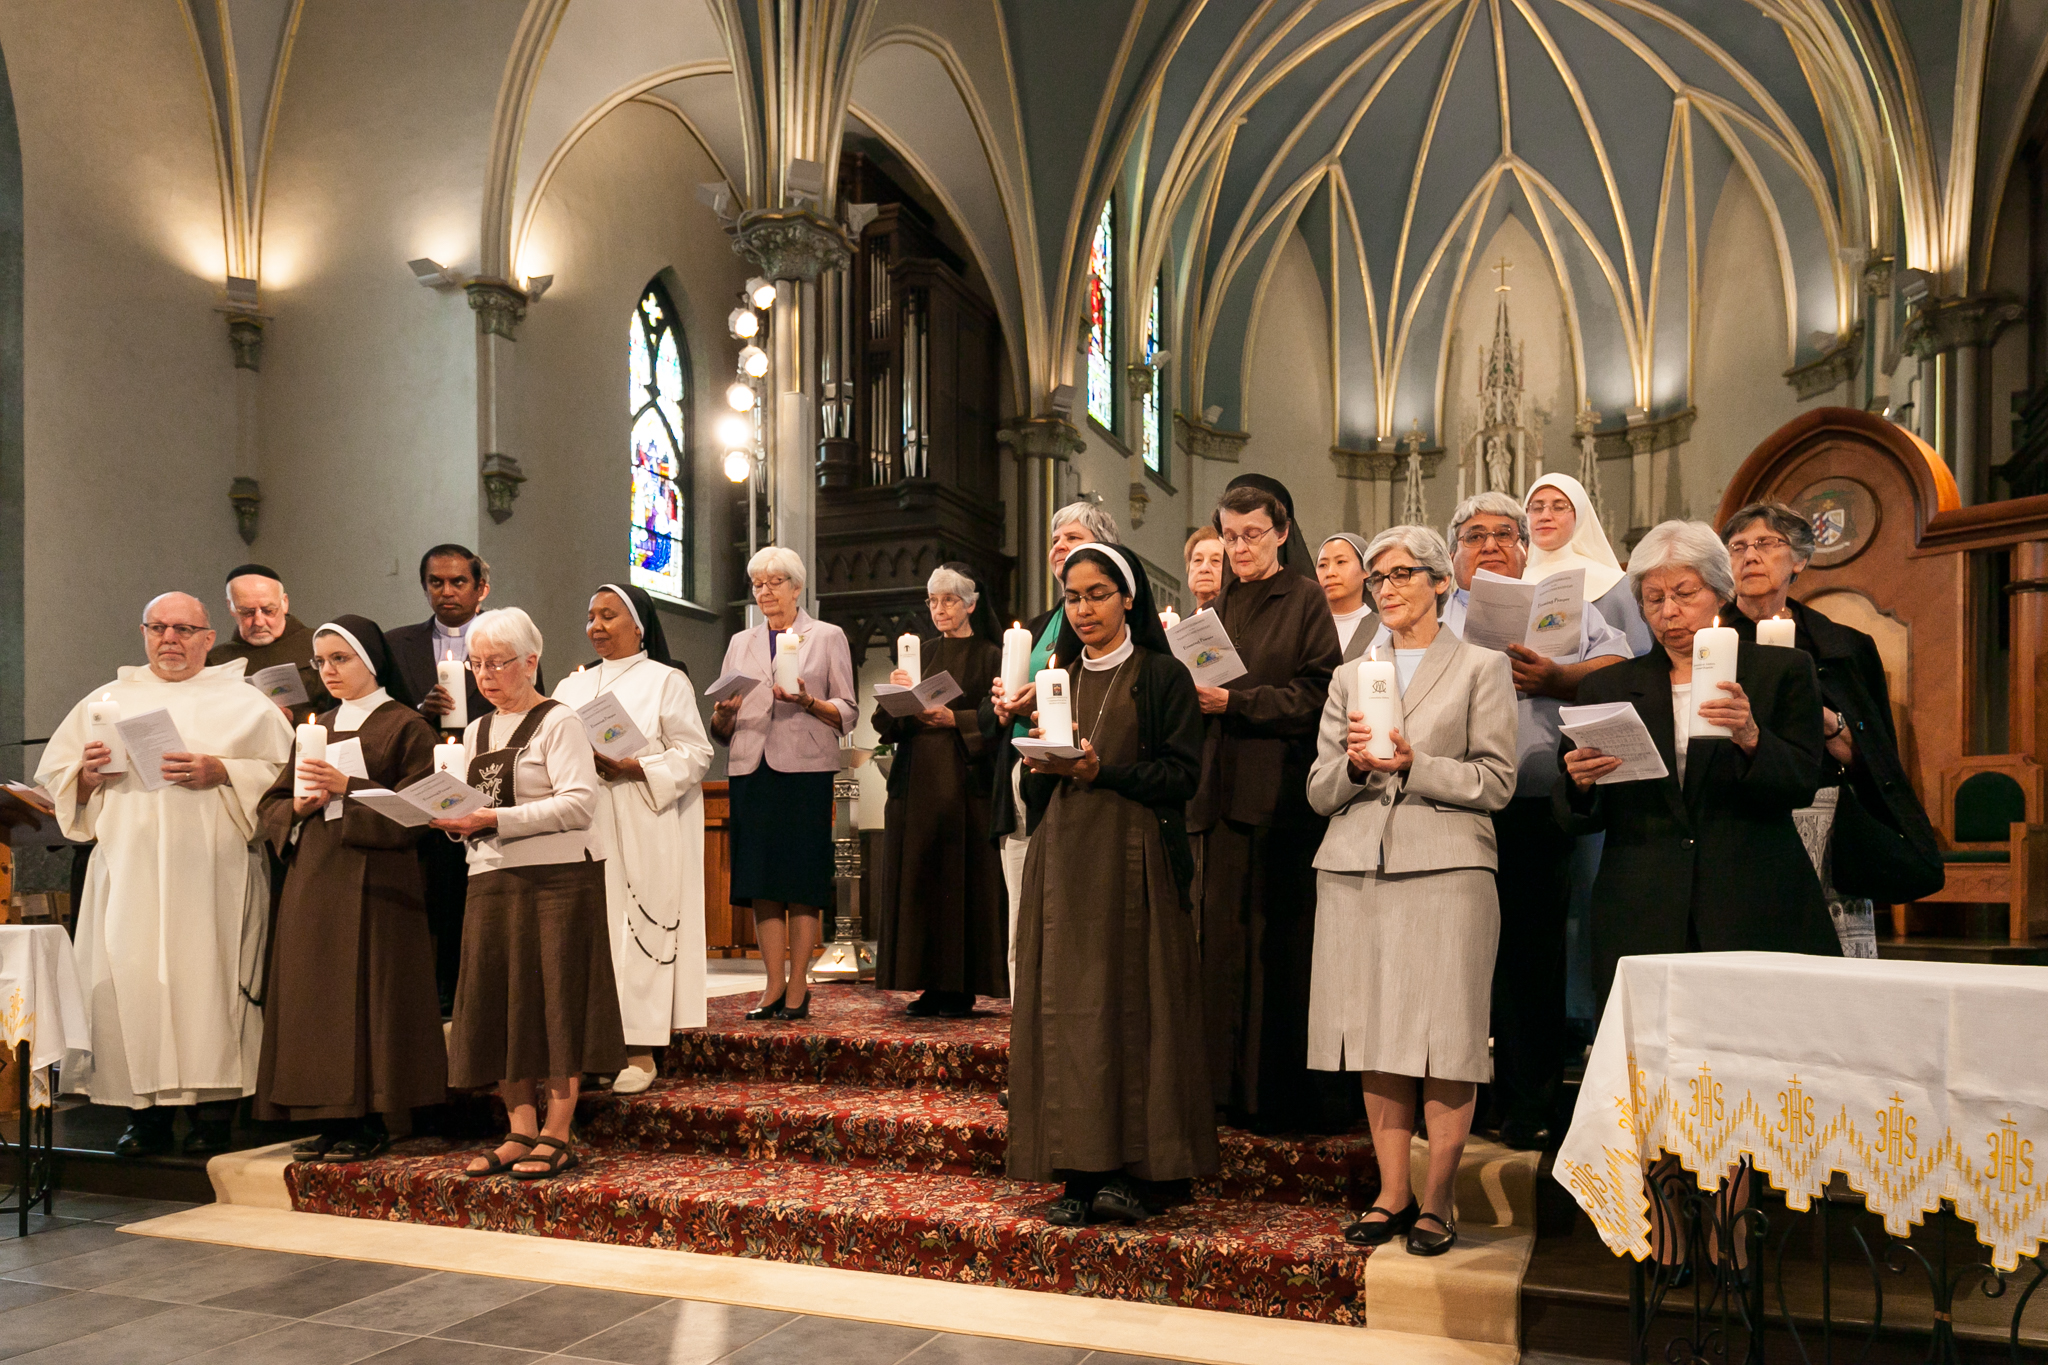 pirests and sisters stand on the altar of the cathedral of saint andrew during a blessing during the mass for consecrated religious life in sept. 2015